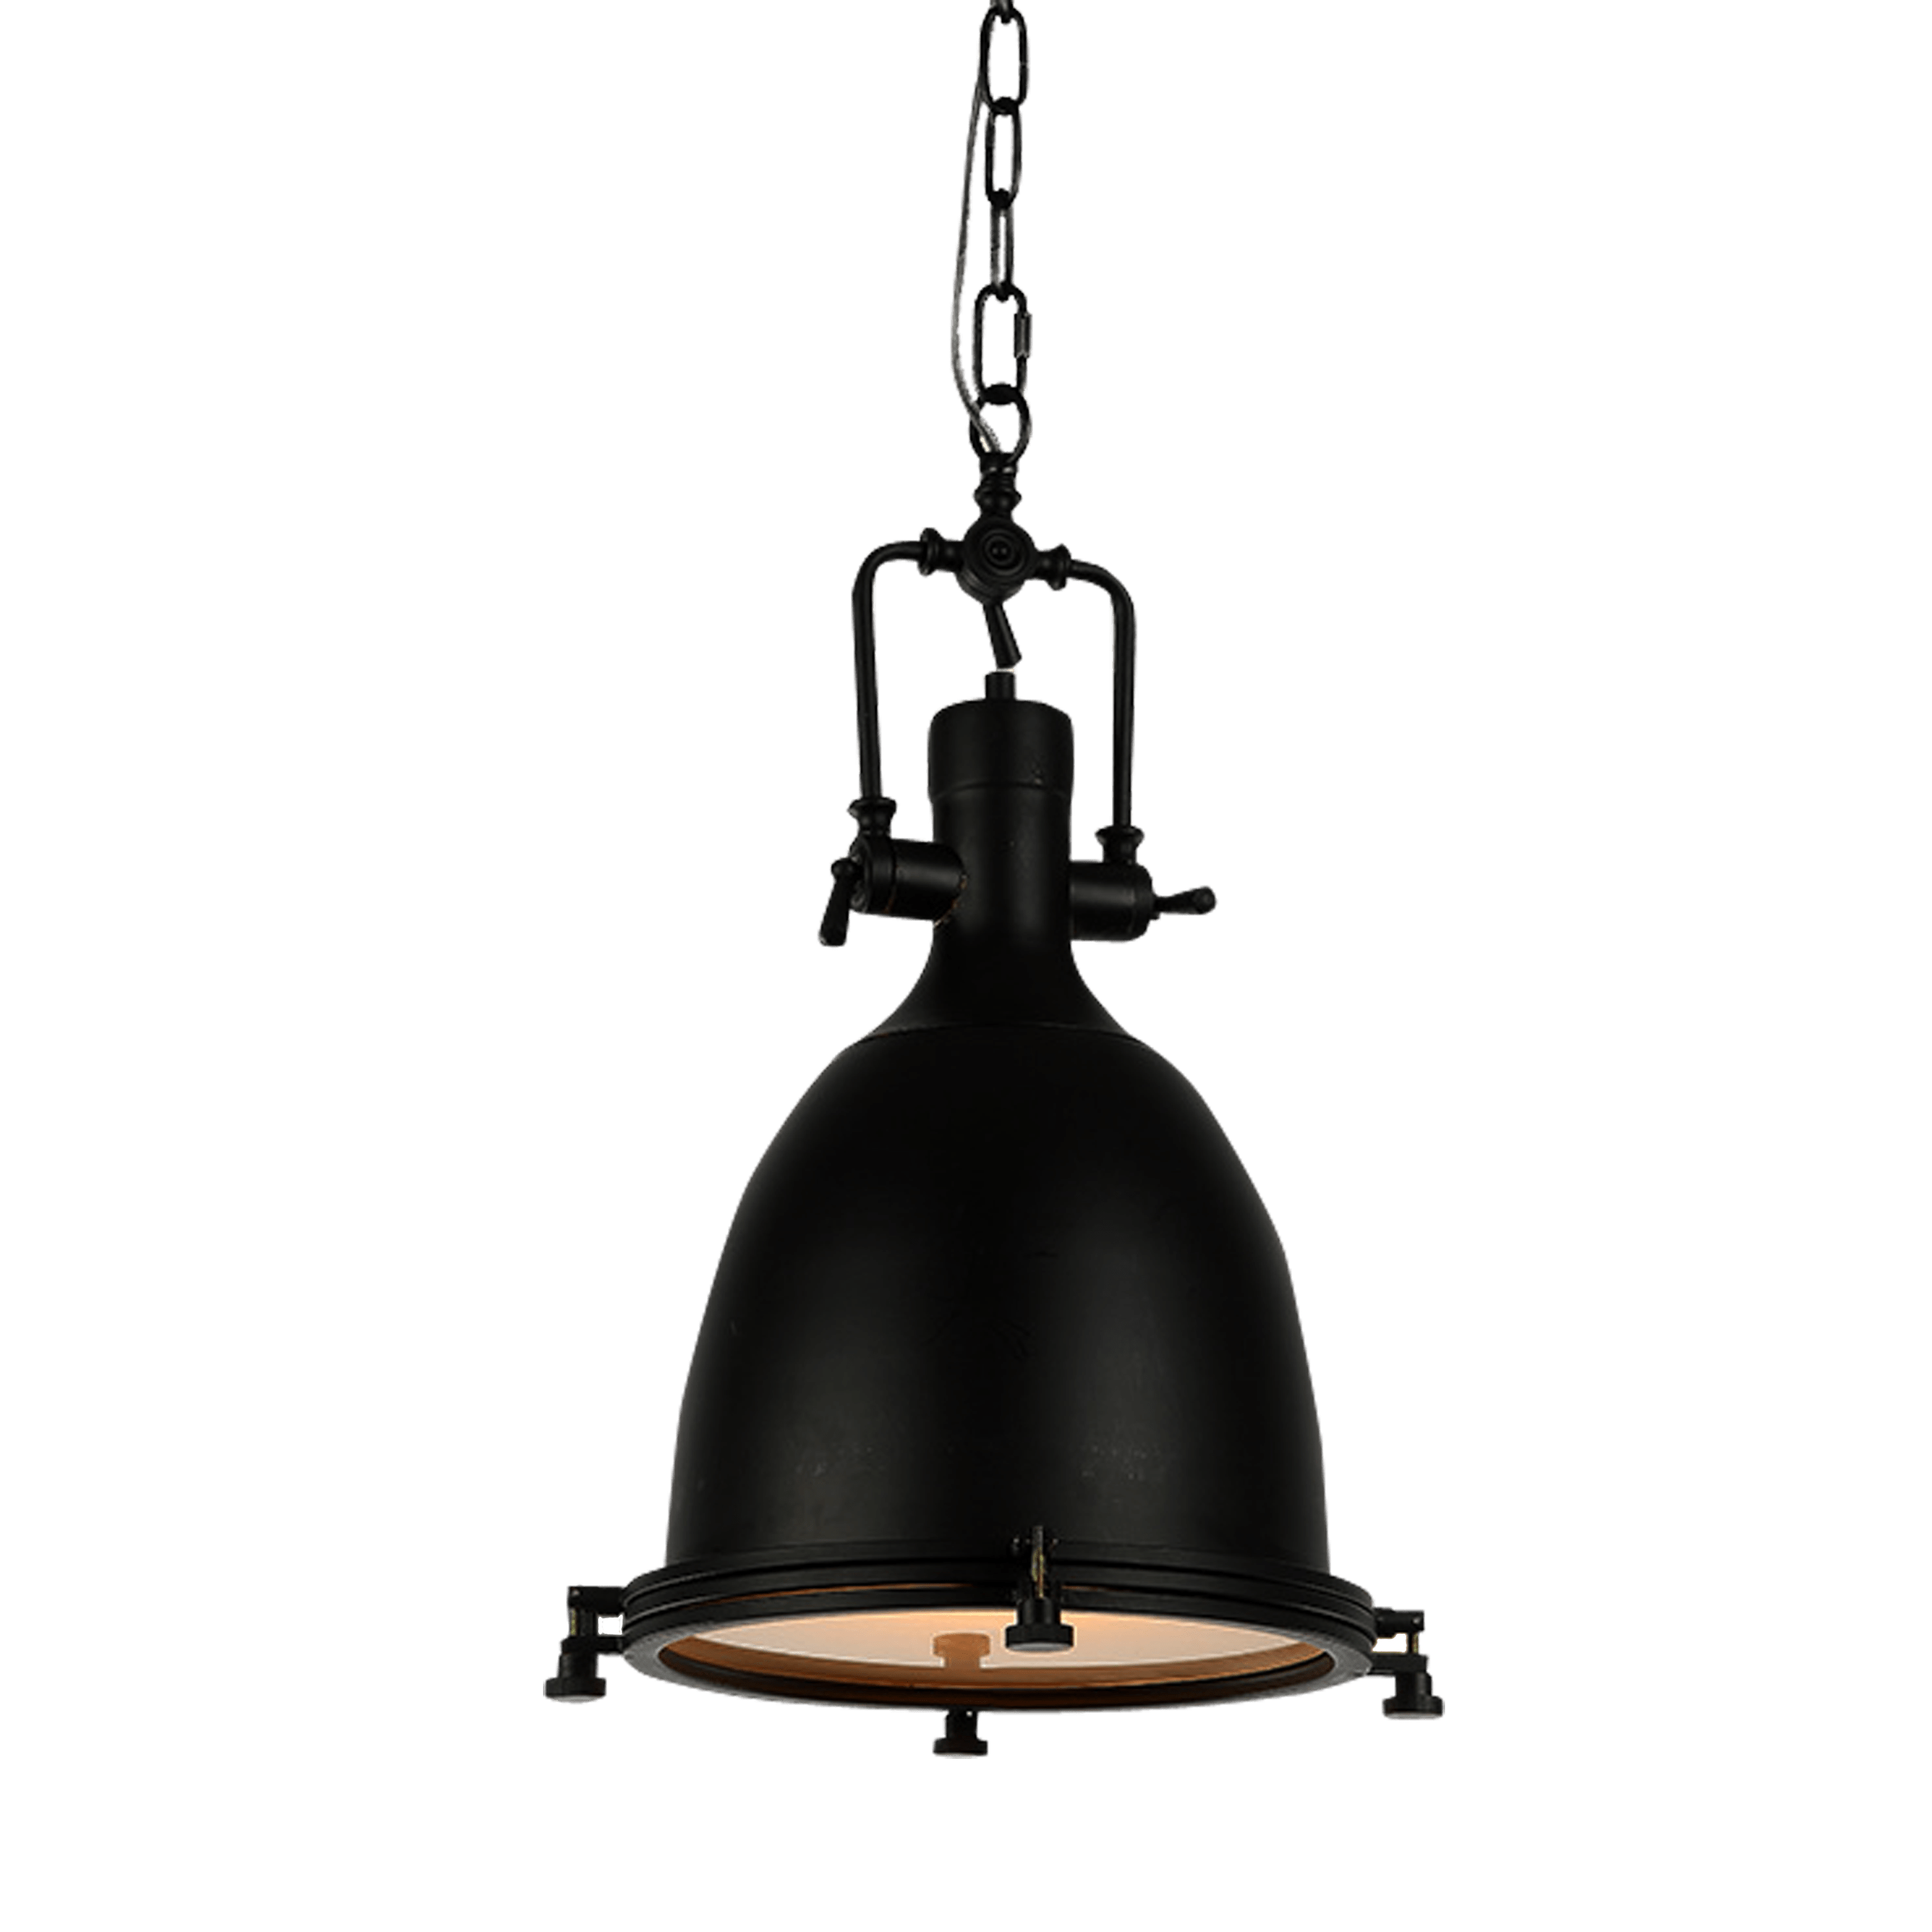 L mpara decorativa tipo industrial negra mundo led - Lamparas de techo tipo industrial ...